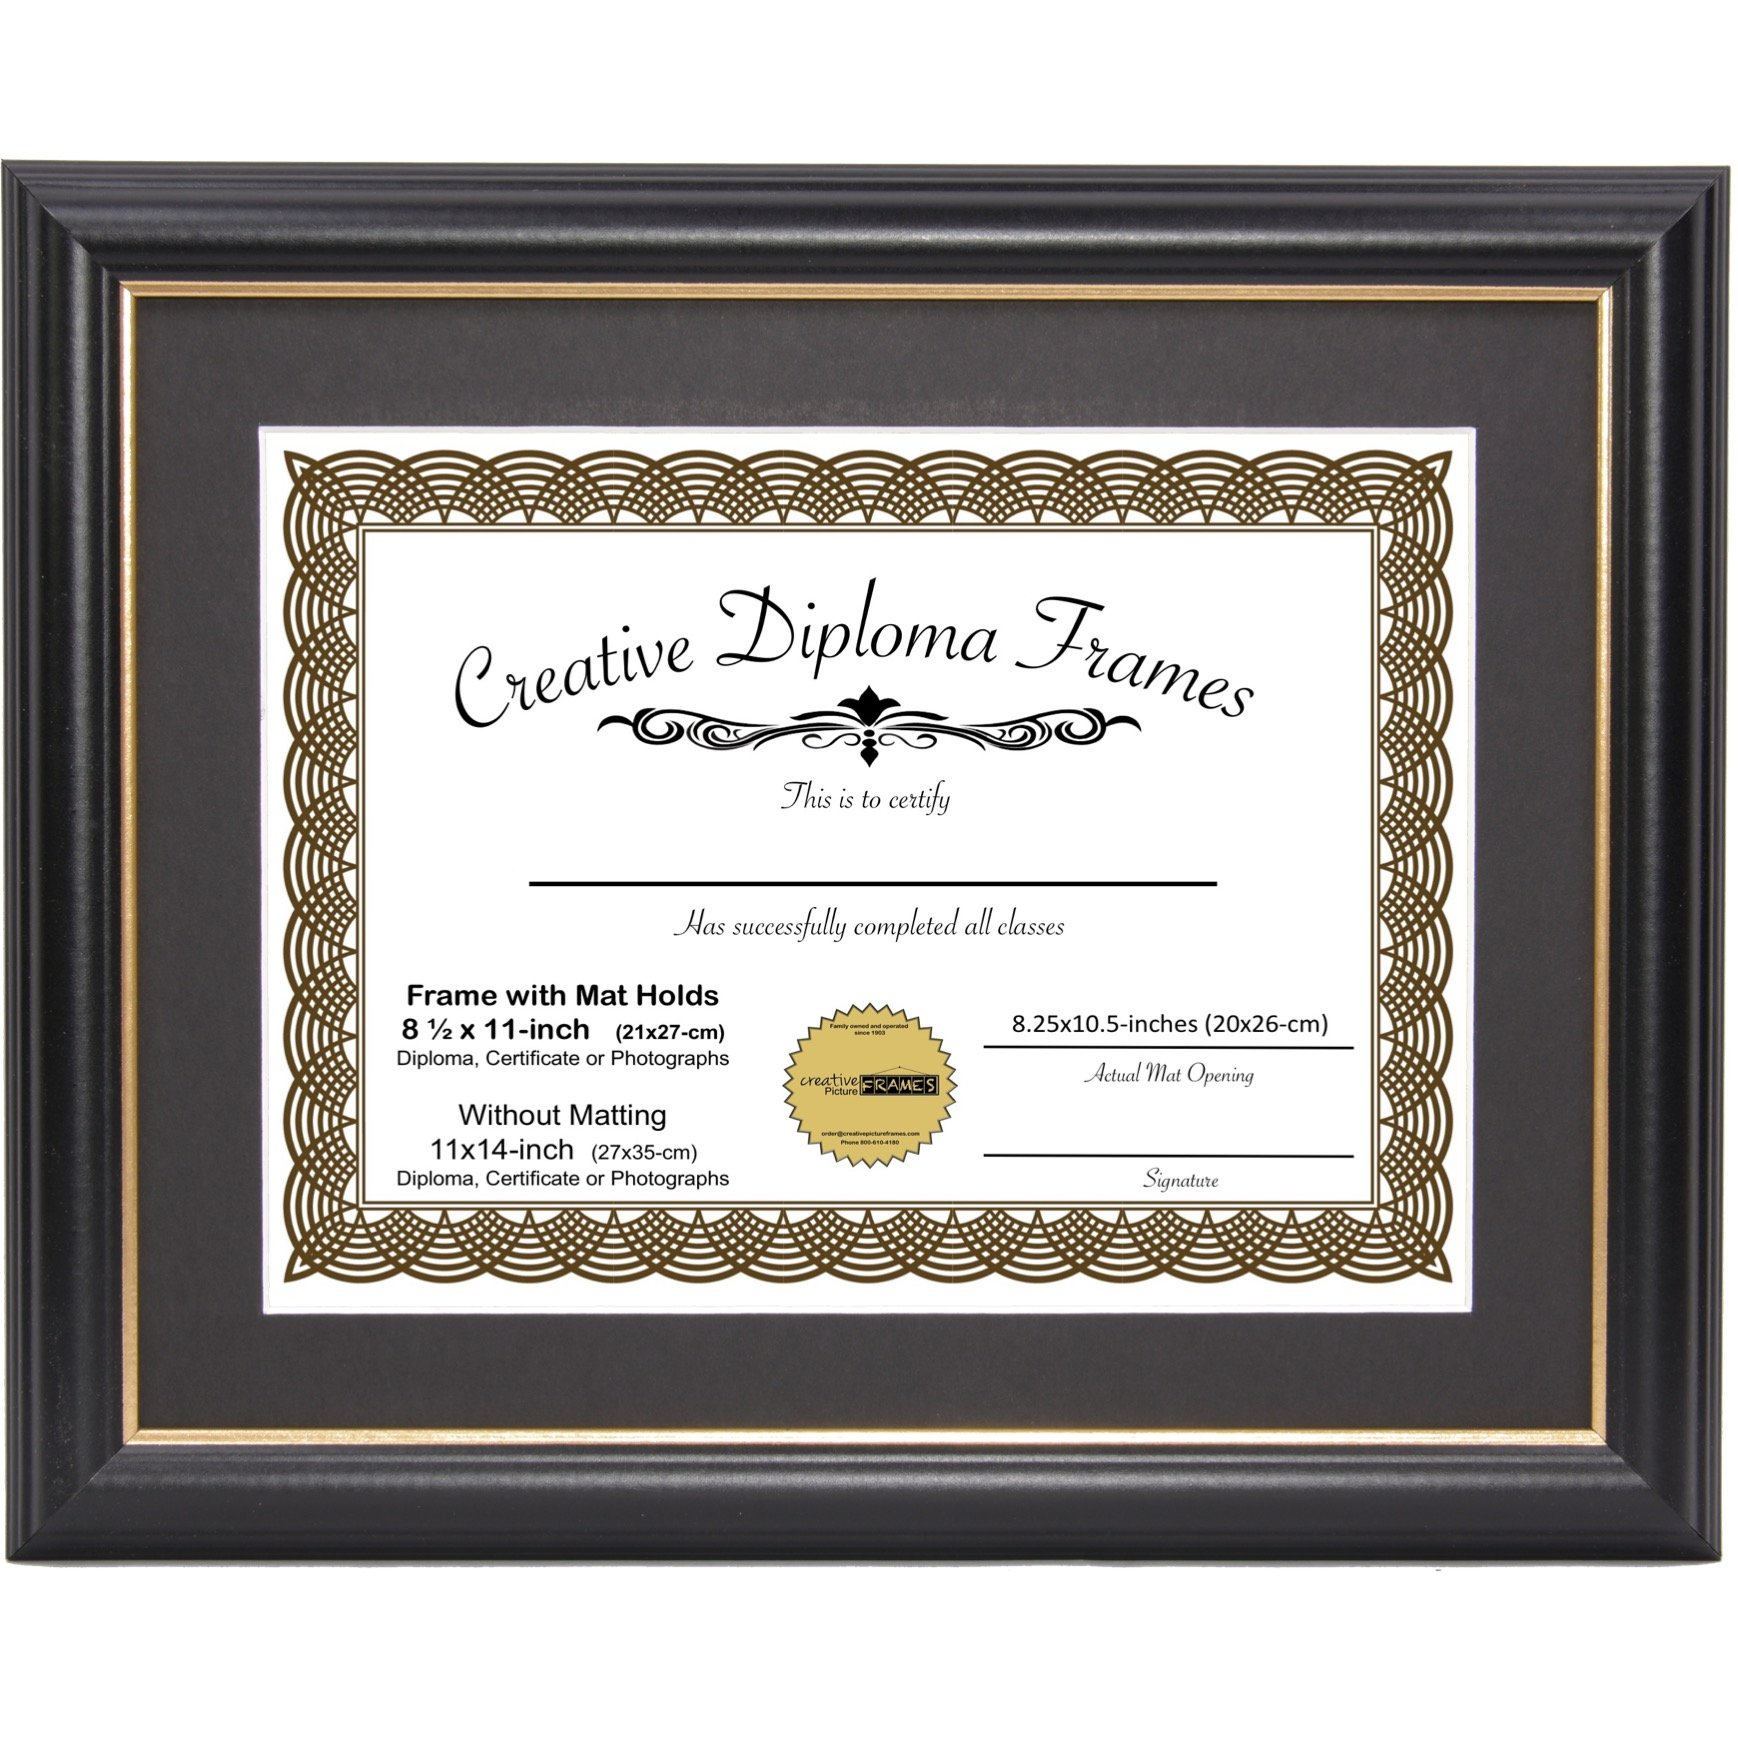 CreativePF [11x14bk.gd] Black Frame with Gold Rim, Black Matting Holds 8.5 by 11-inch Diploma with Easel and installed Hangers